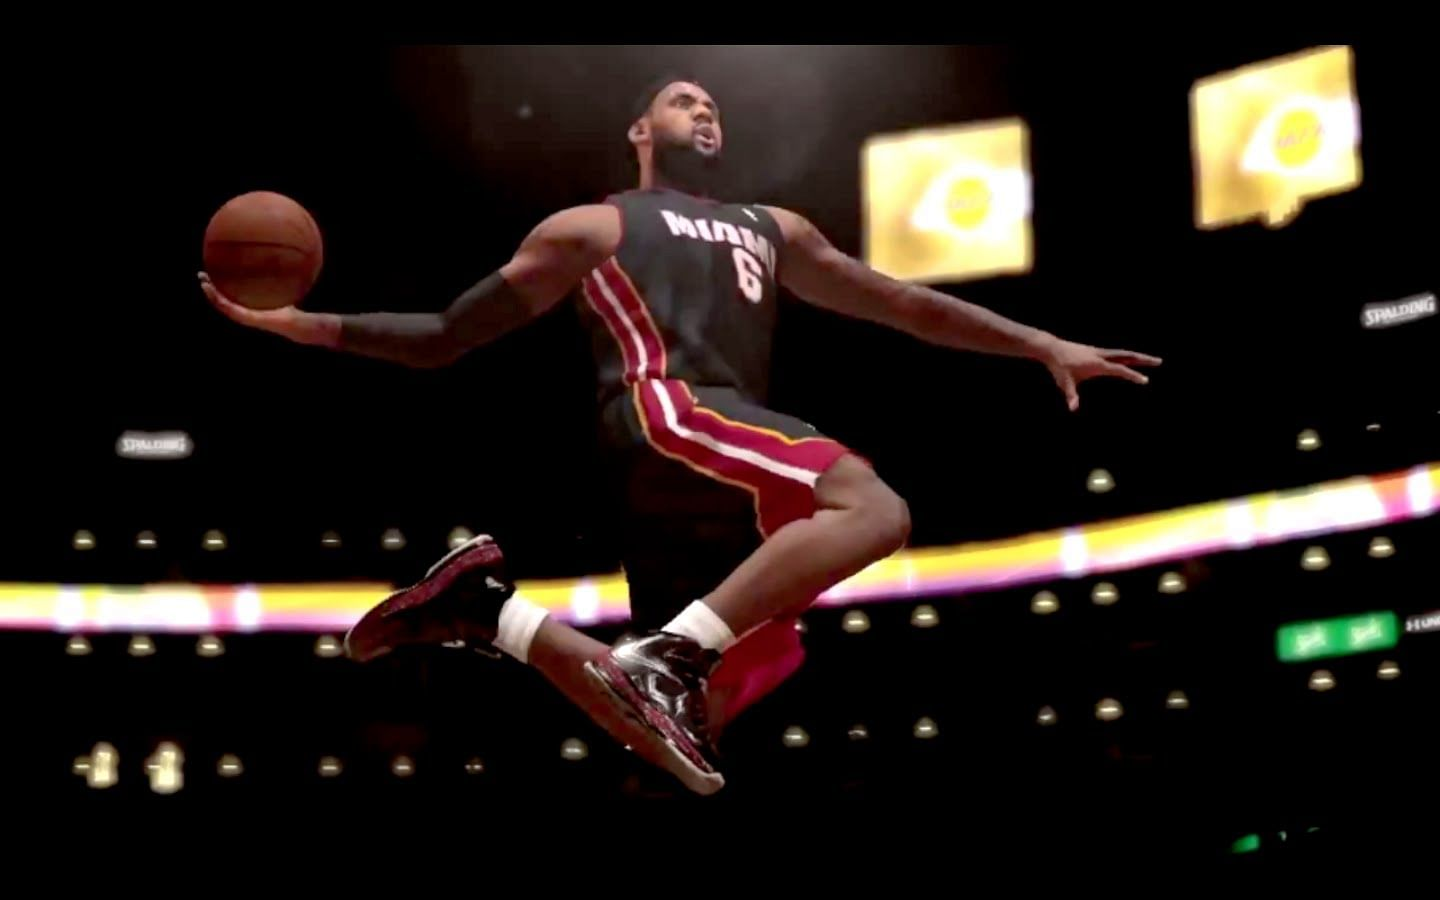 NBA 2K14: Skills explained